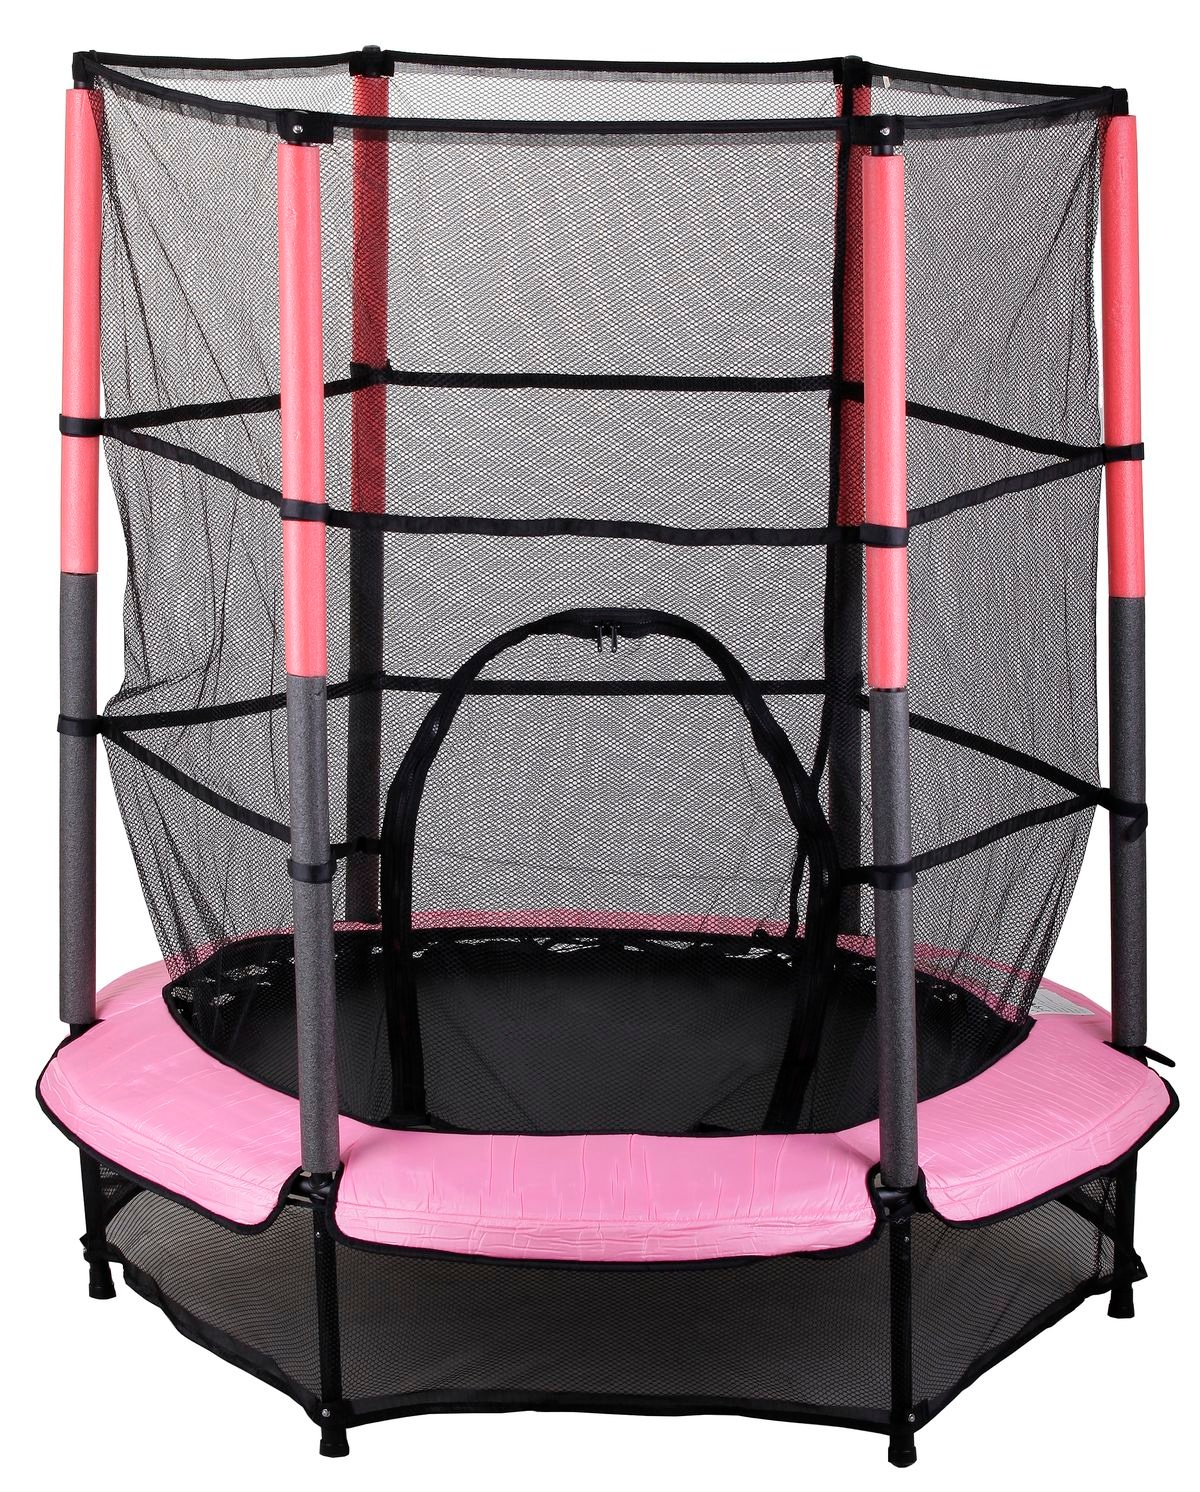 kinder trampolin indoor outdoor garten 140cm mit sicherheitsnetz pink ebay. Black Bedroom Furniture Sets. Home Design Ideas